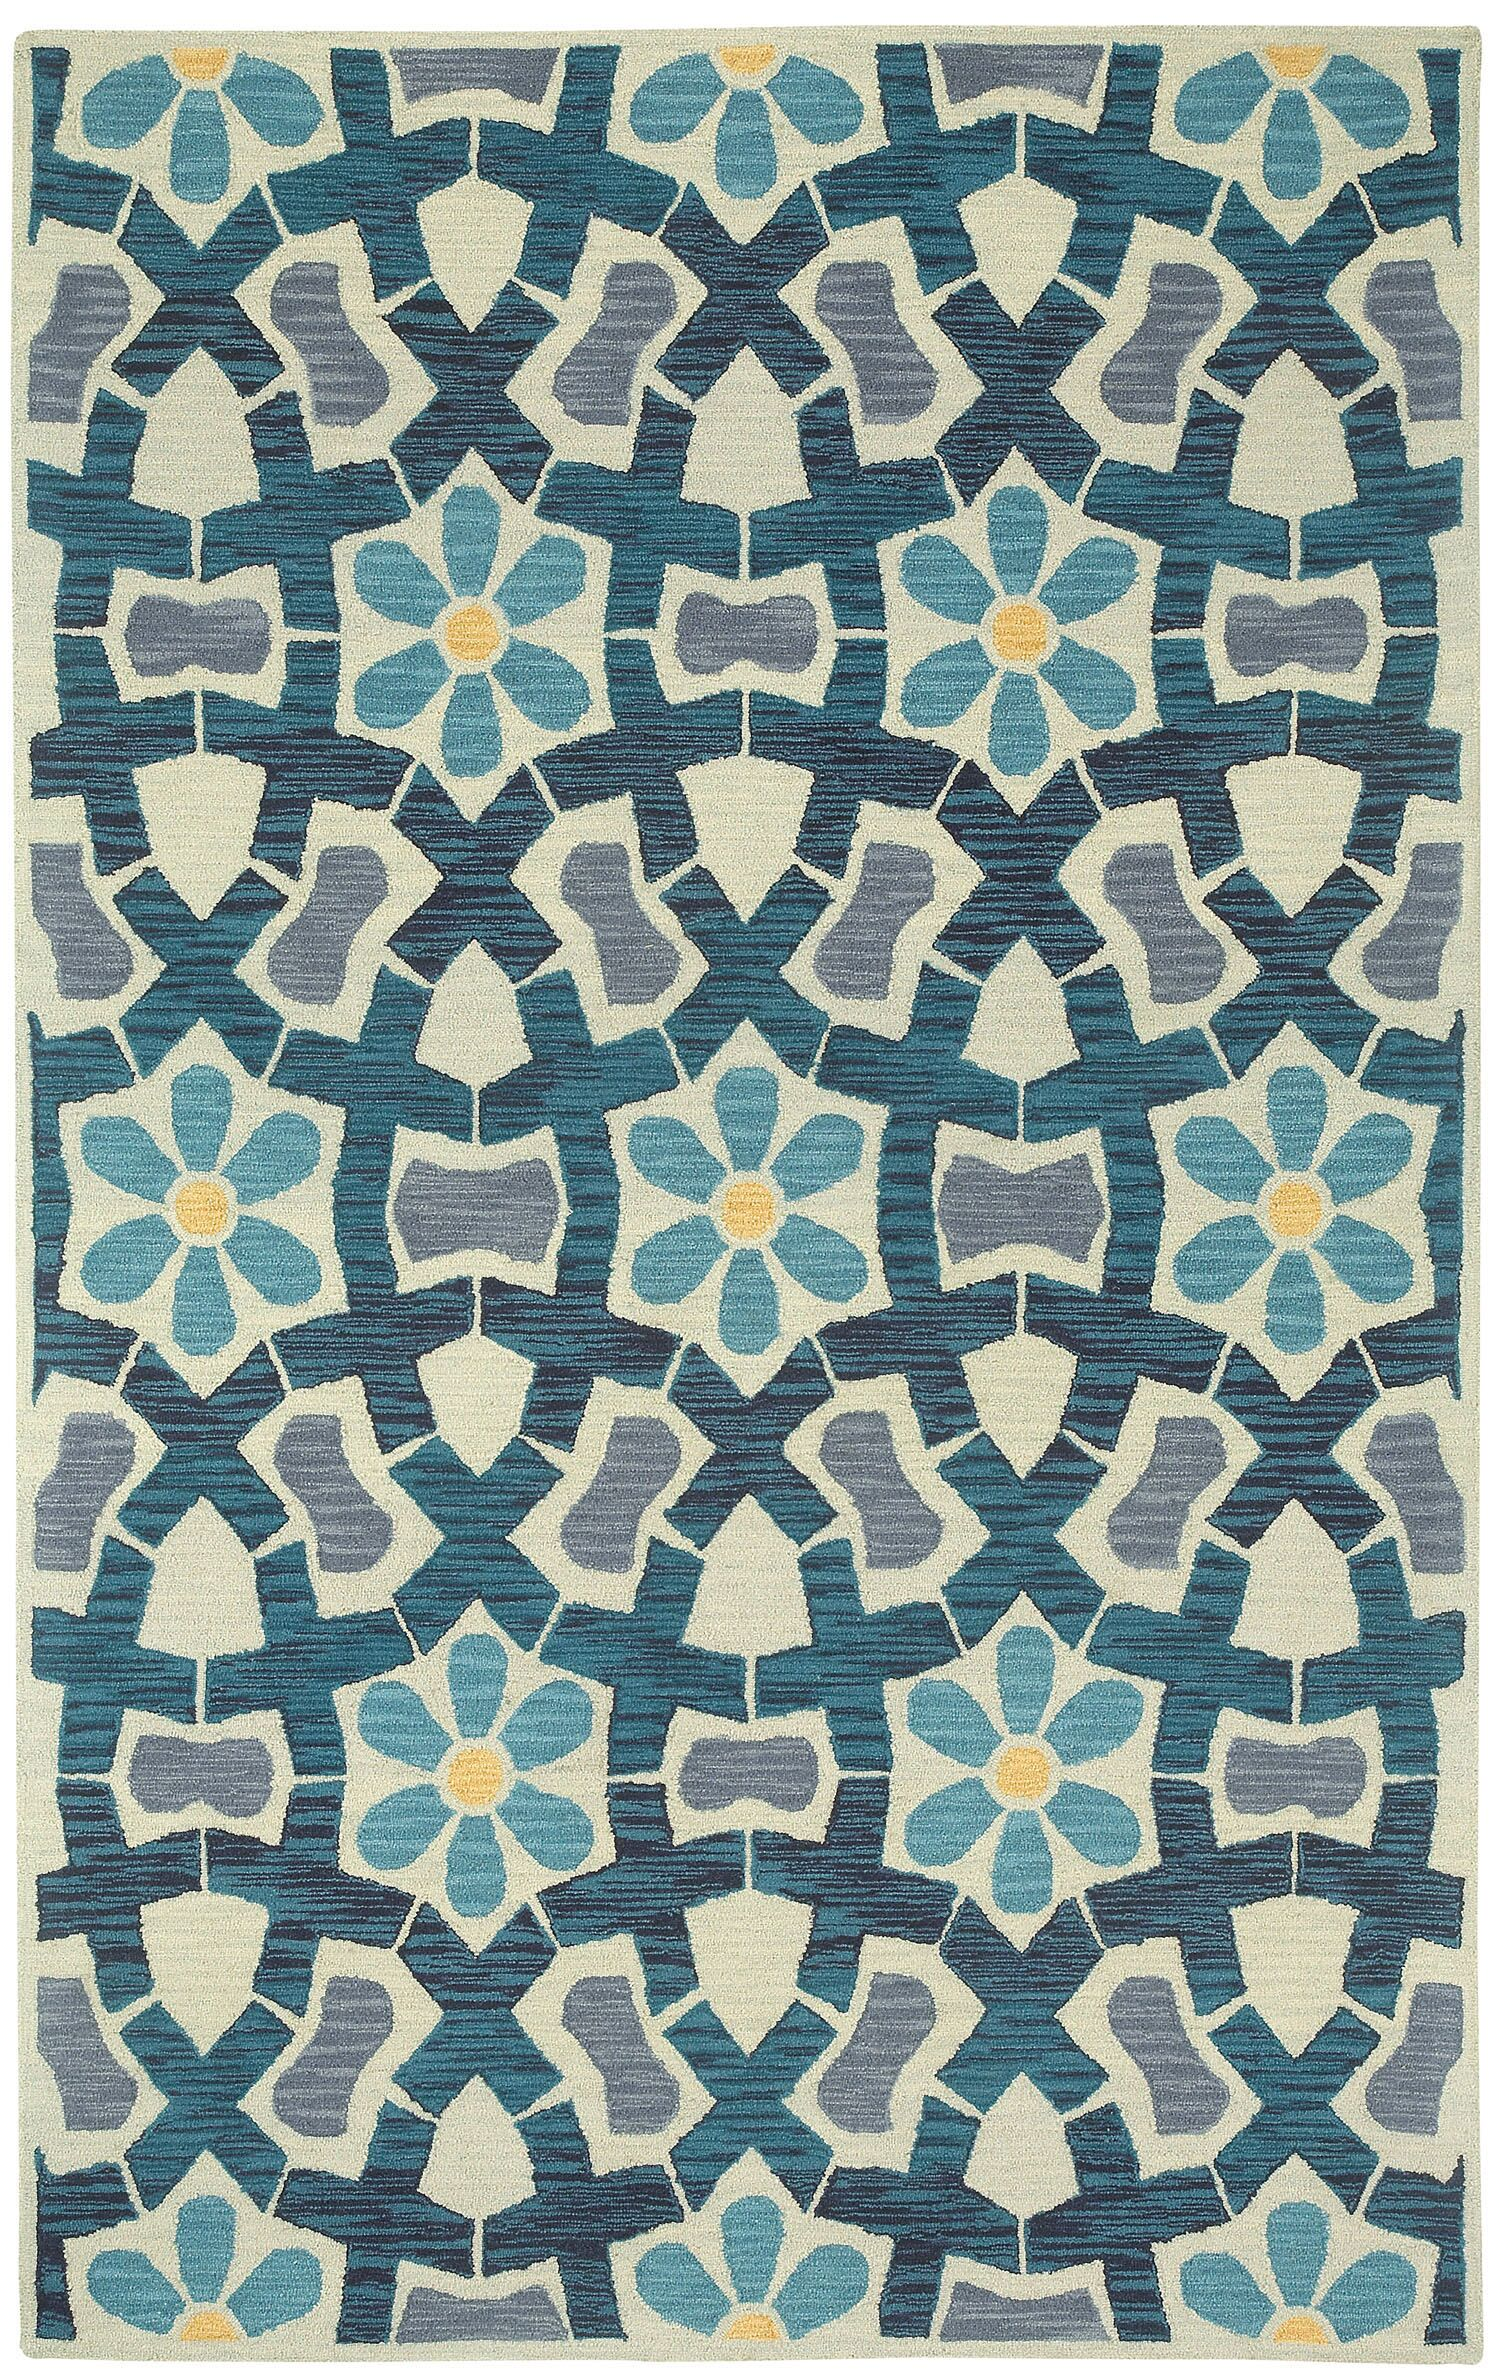 Stepping Stone Hand Tufted Area Rug Rug Size: 8' x 11'